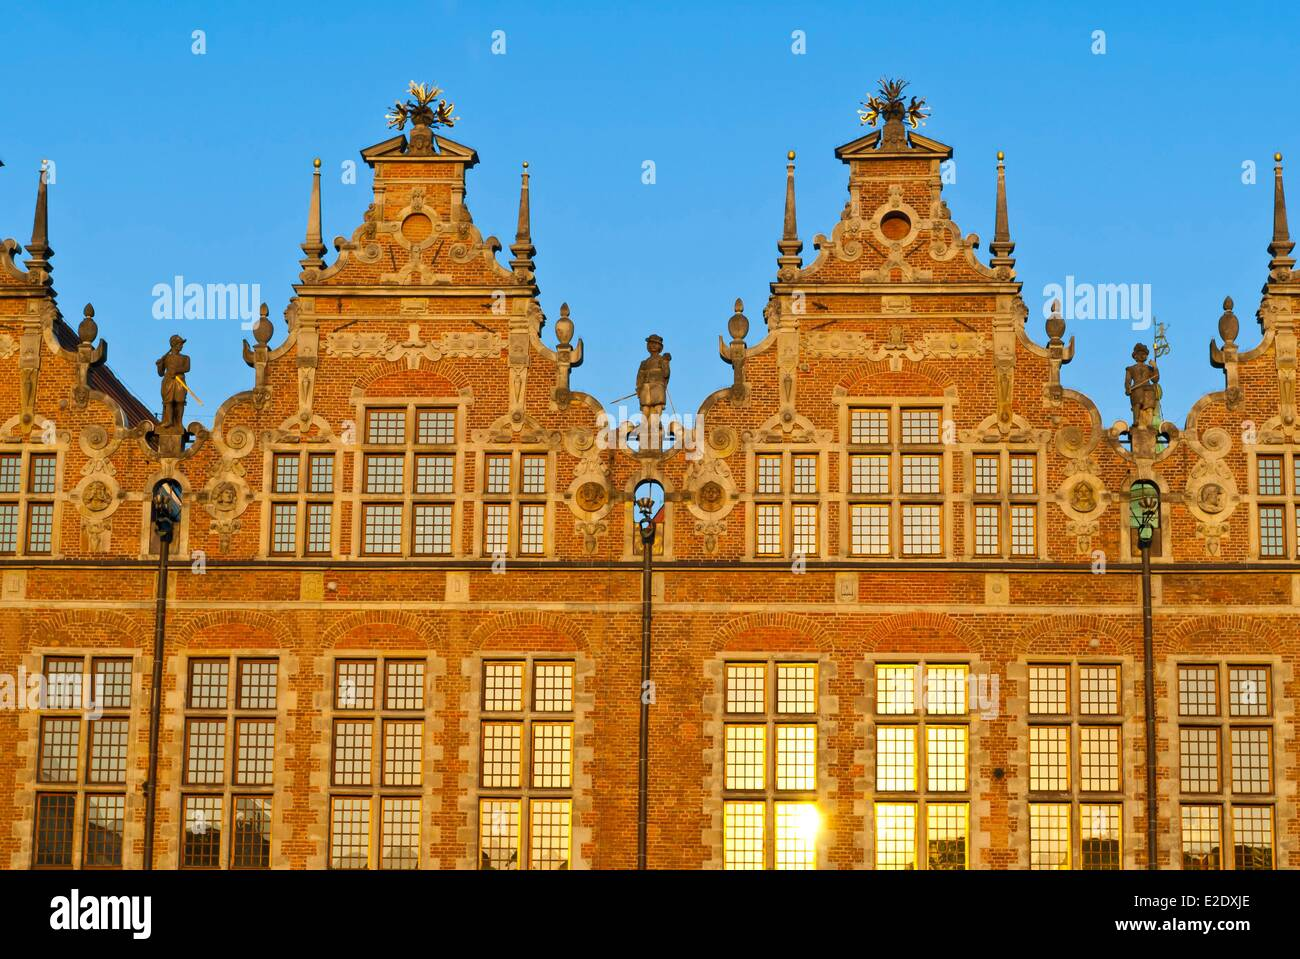 Poland Eastern Pomerania Gdansk Great Arsenal elegant building built in a Flemish Renaissance style between 1600 - Stock Image